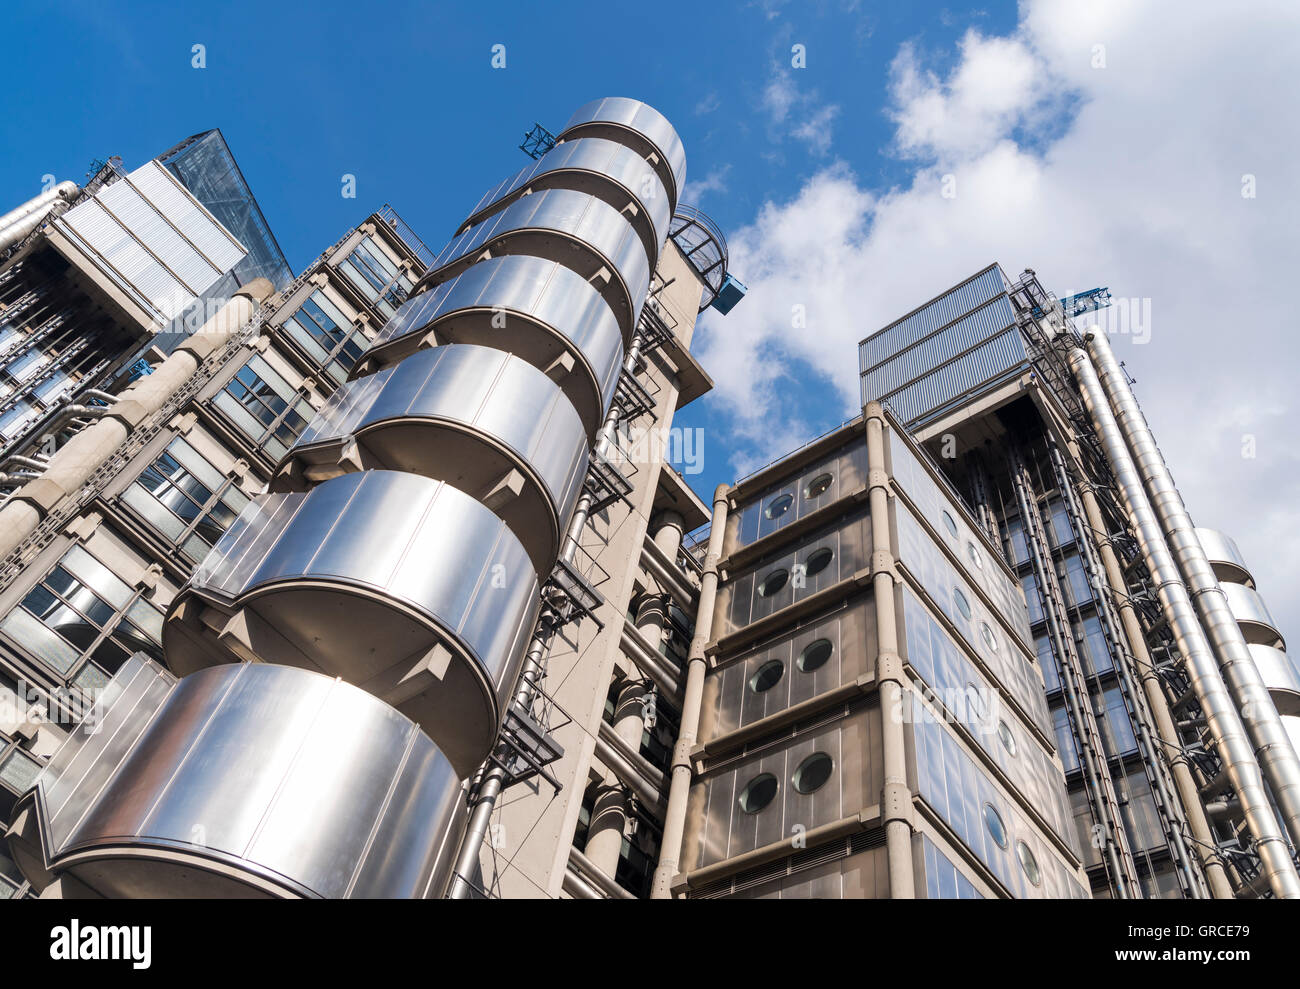 Lloyd's of London, Insurance Company, Modern Architecture in Central London, England - Stock Image